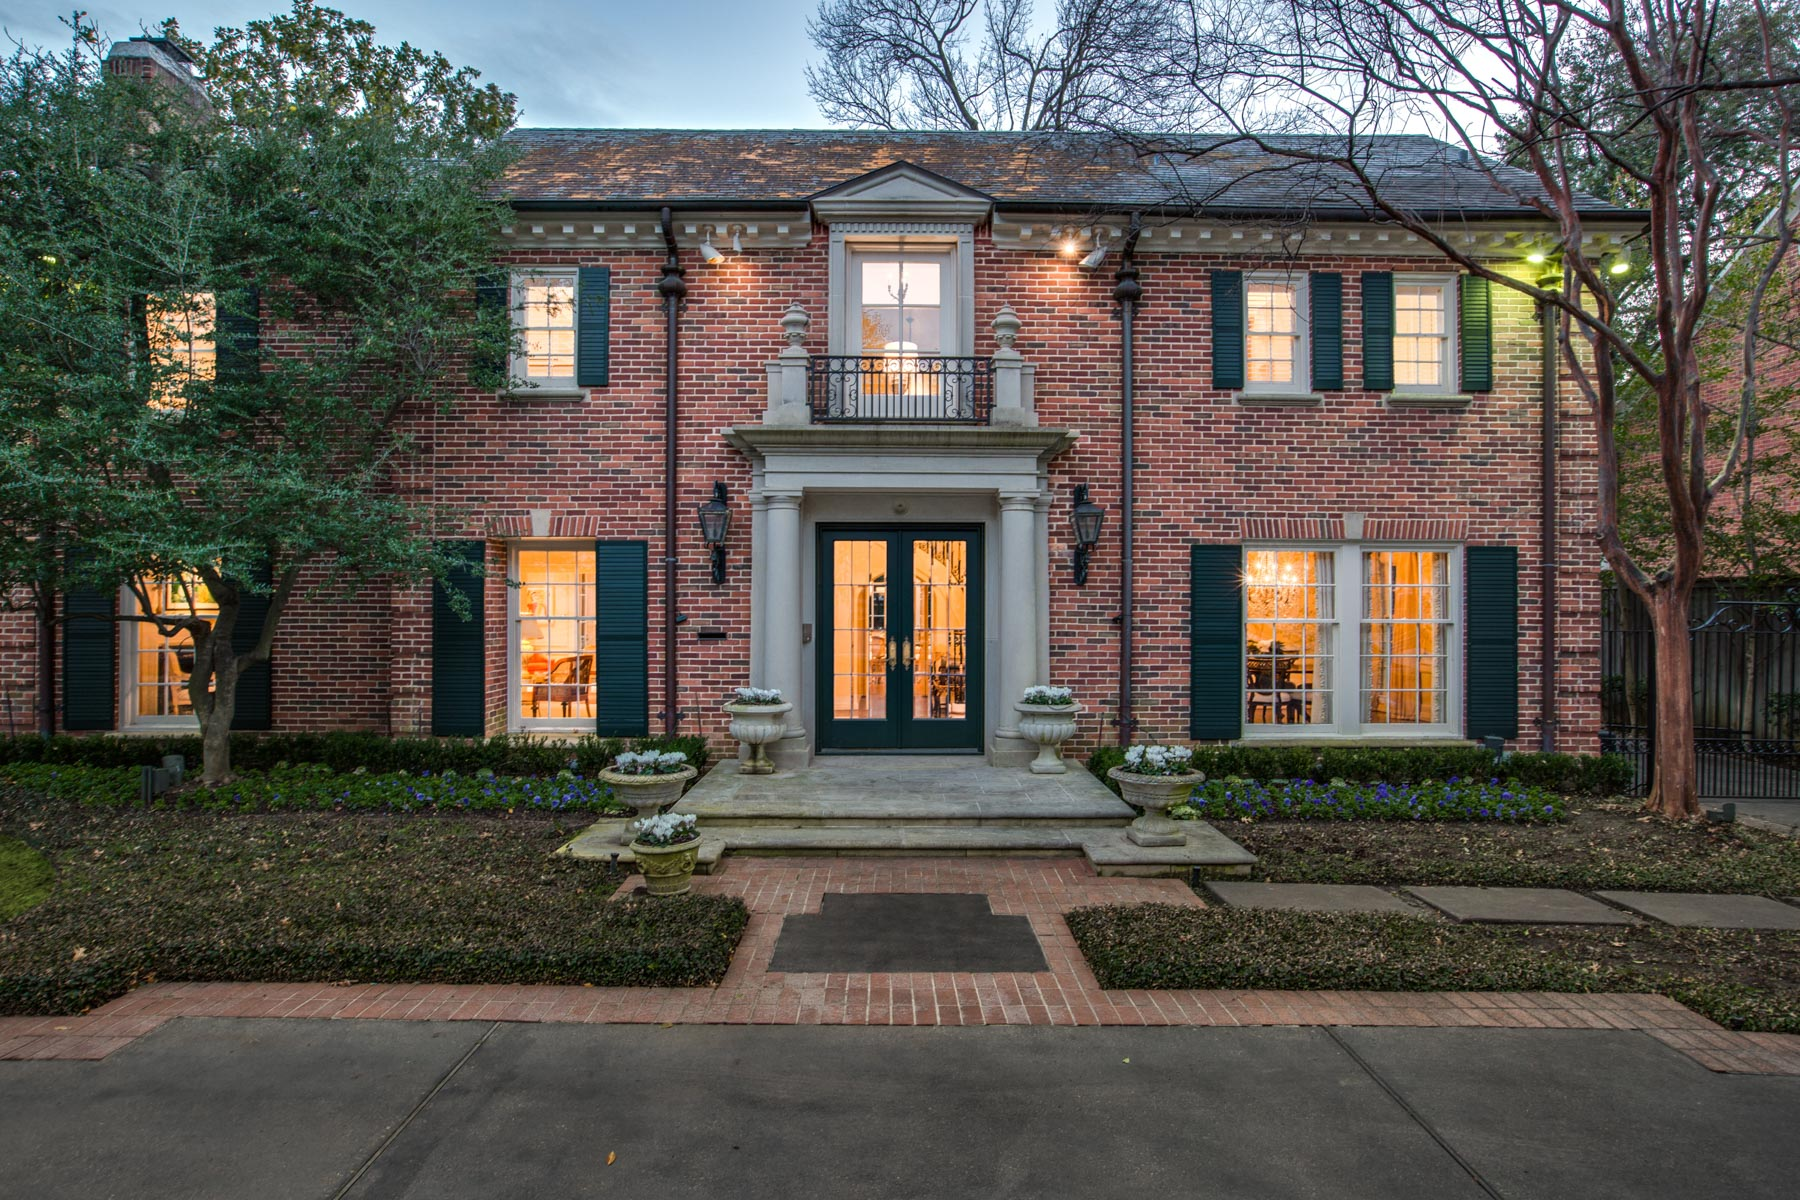 Single Family Home for Sale at Refined Elegance with Exquisite Updates 4433 Bordeaux Ave Highland Park, Texas 75205 United States